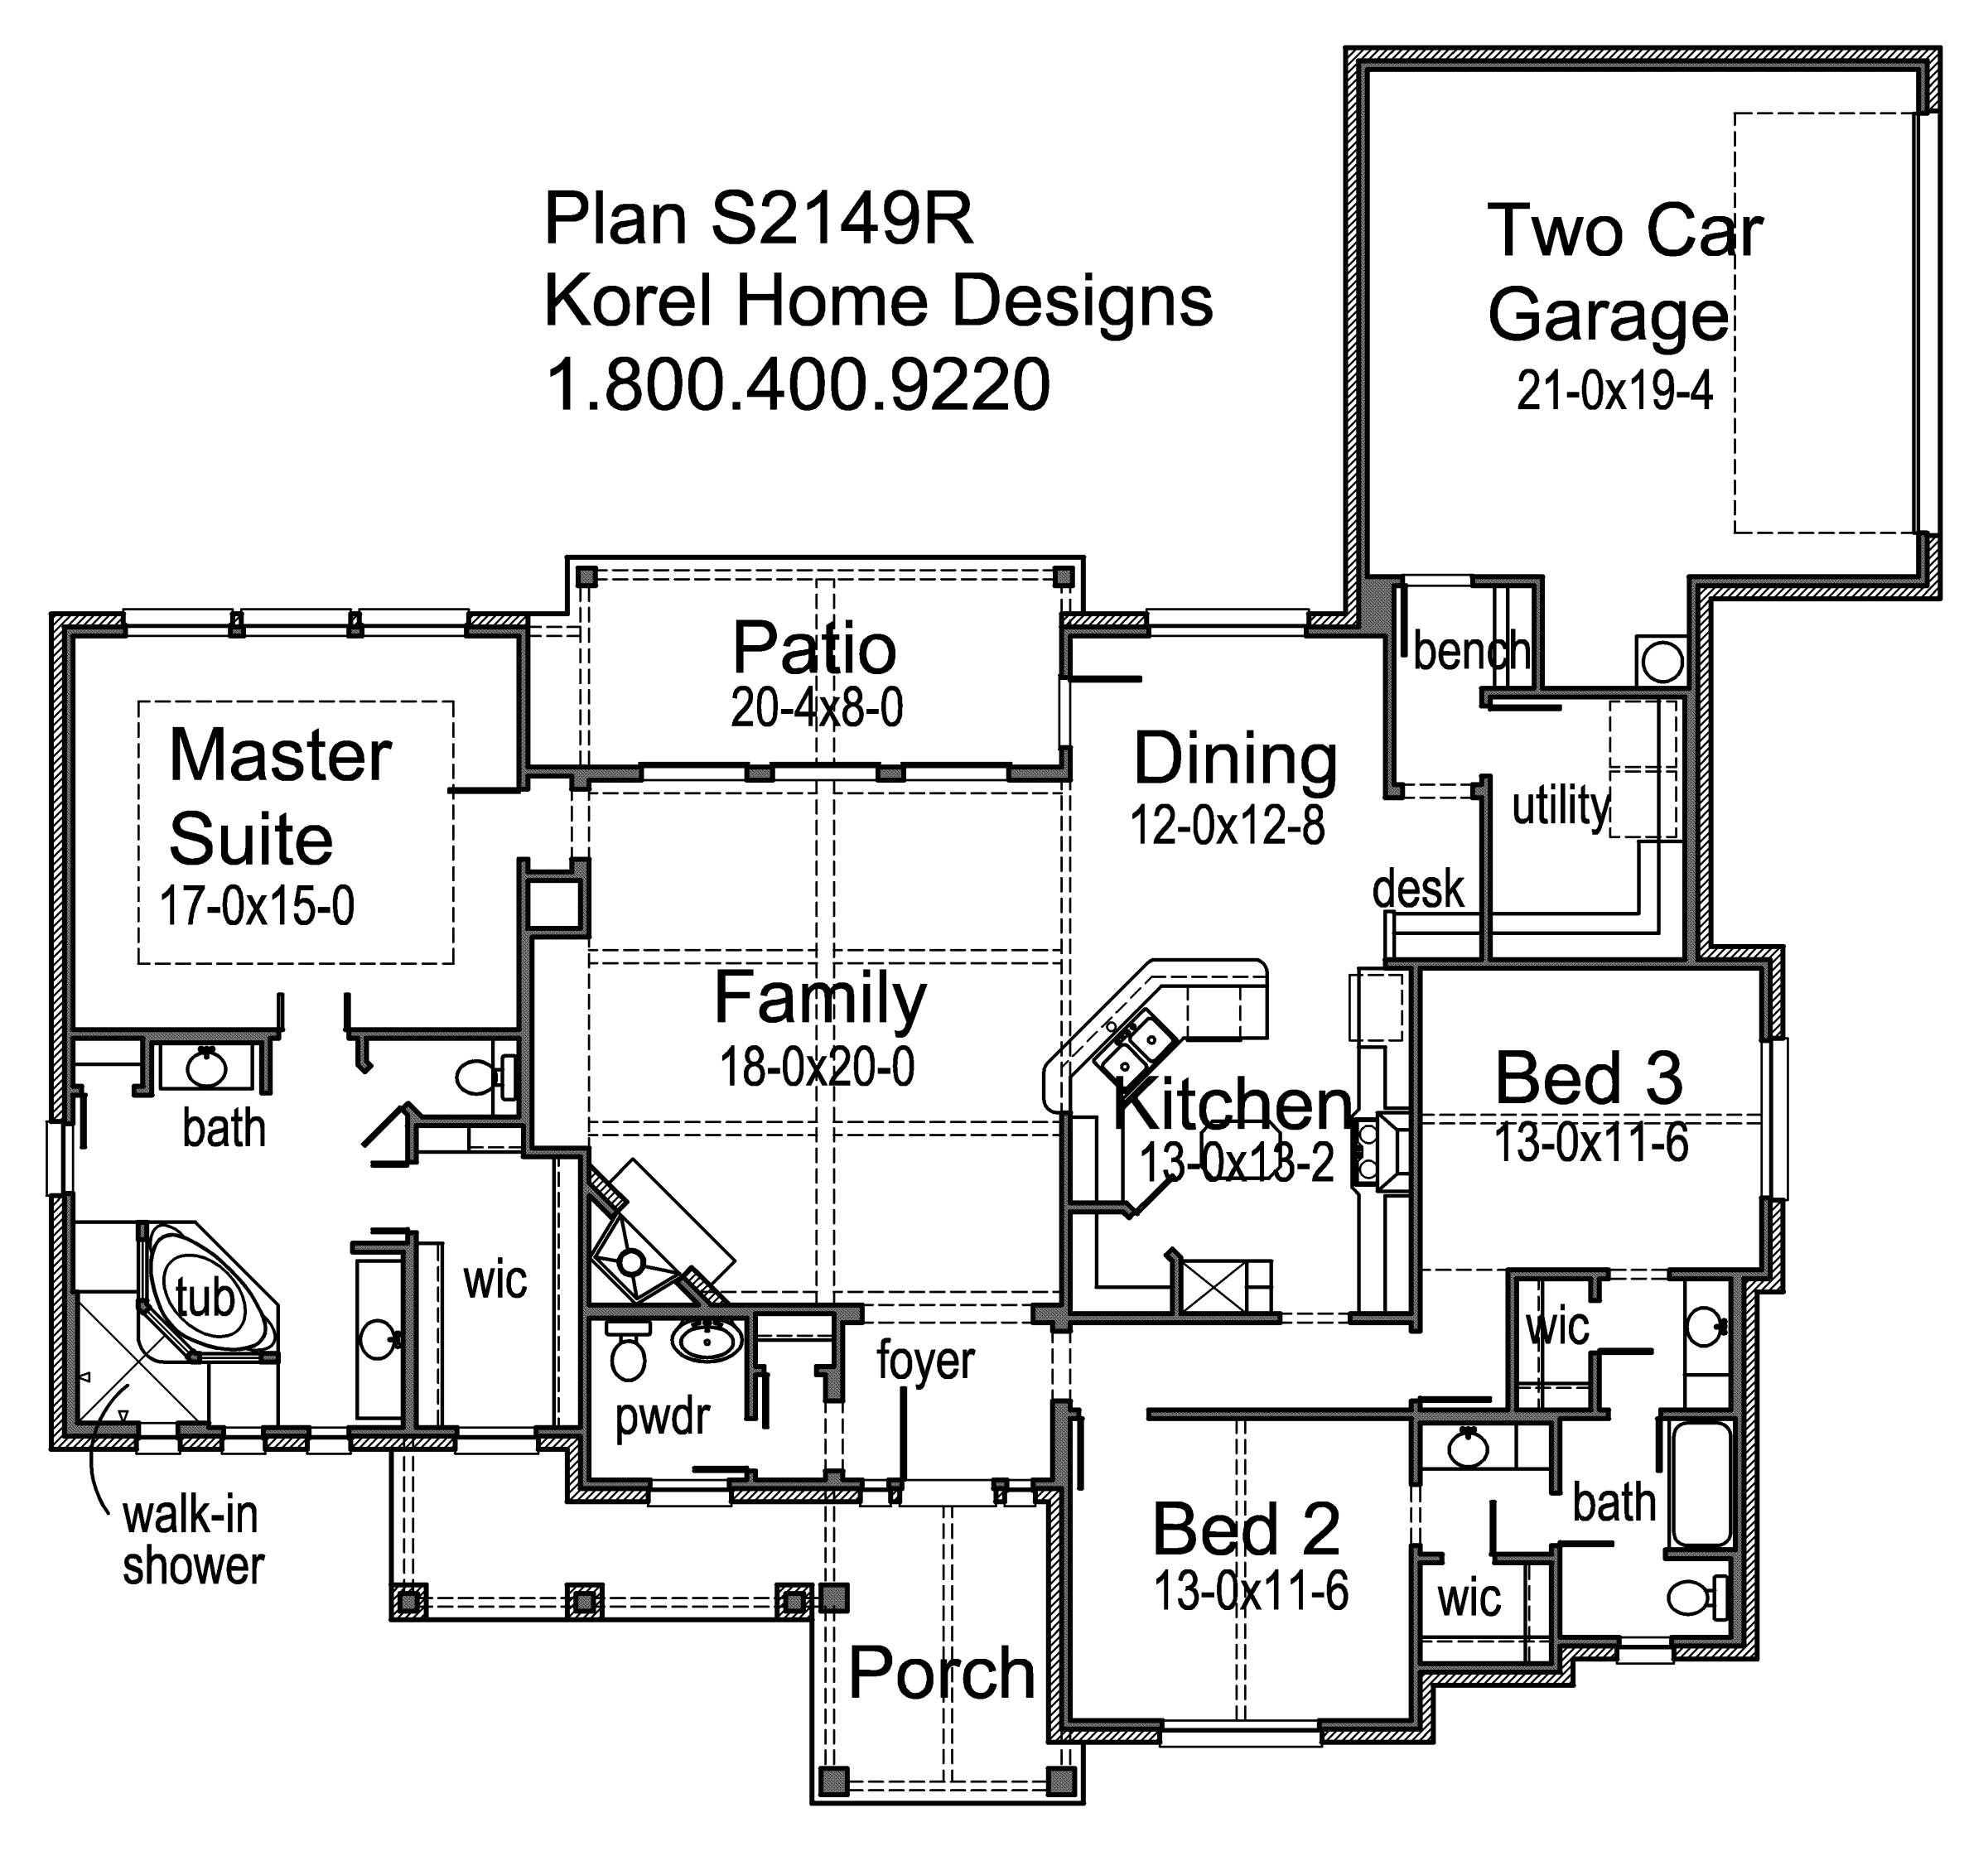 s2149r texas house plans over 700 proven home designs ForKorel Home Designs Online